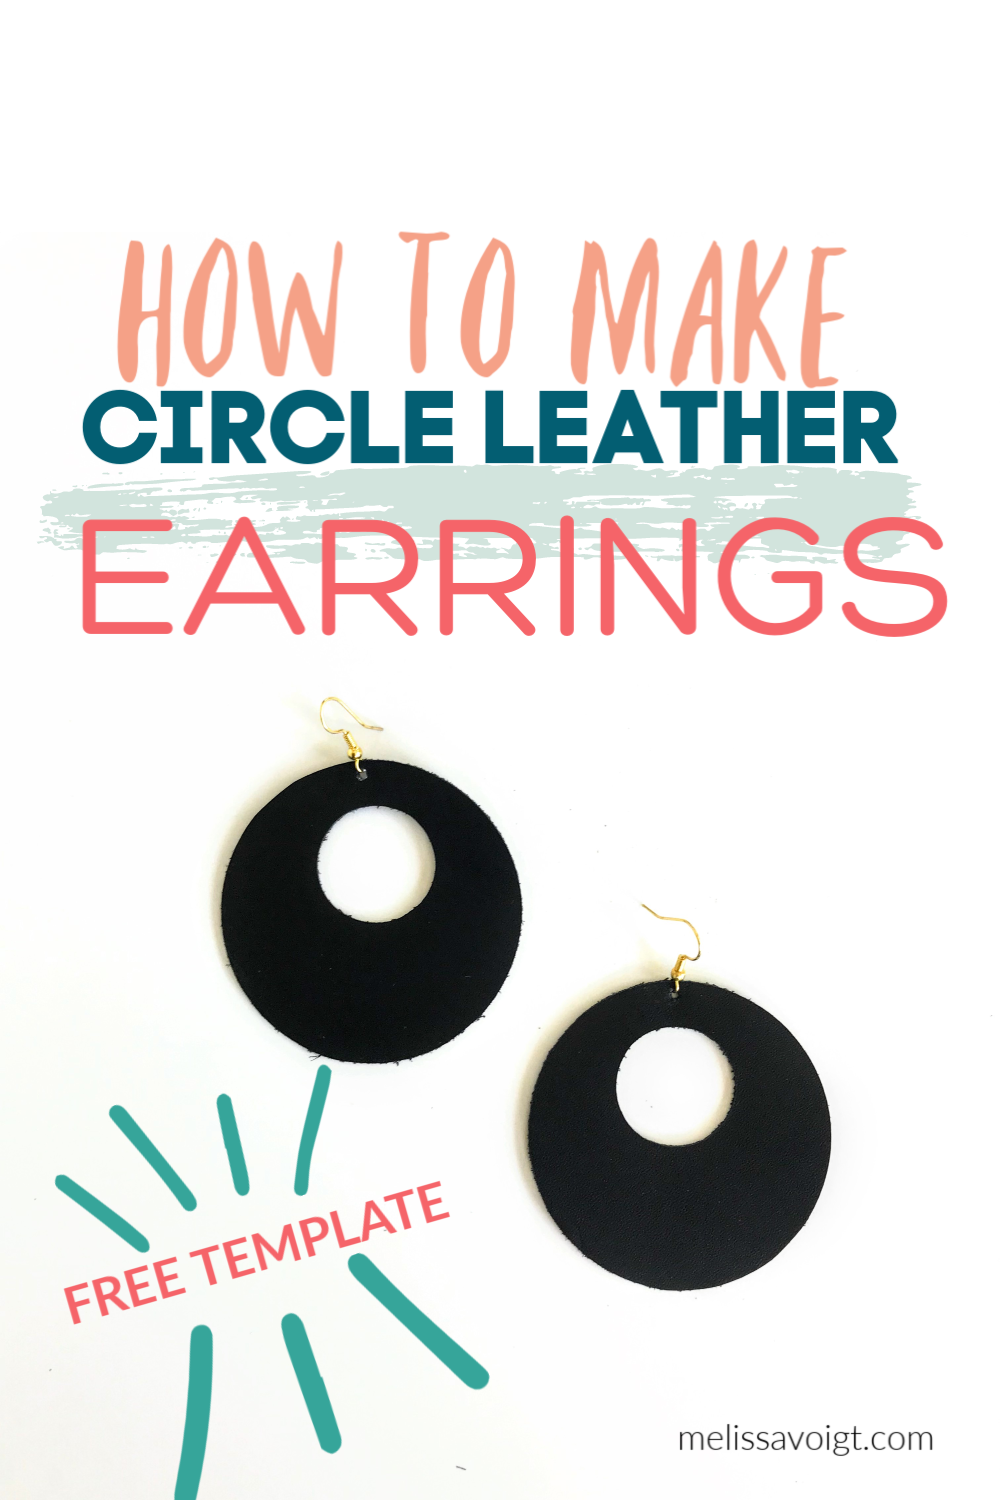 SVG Circle leather earring.png